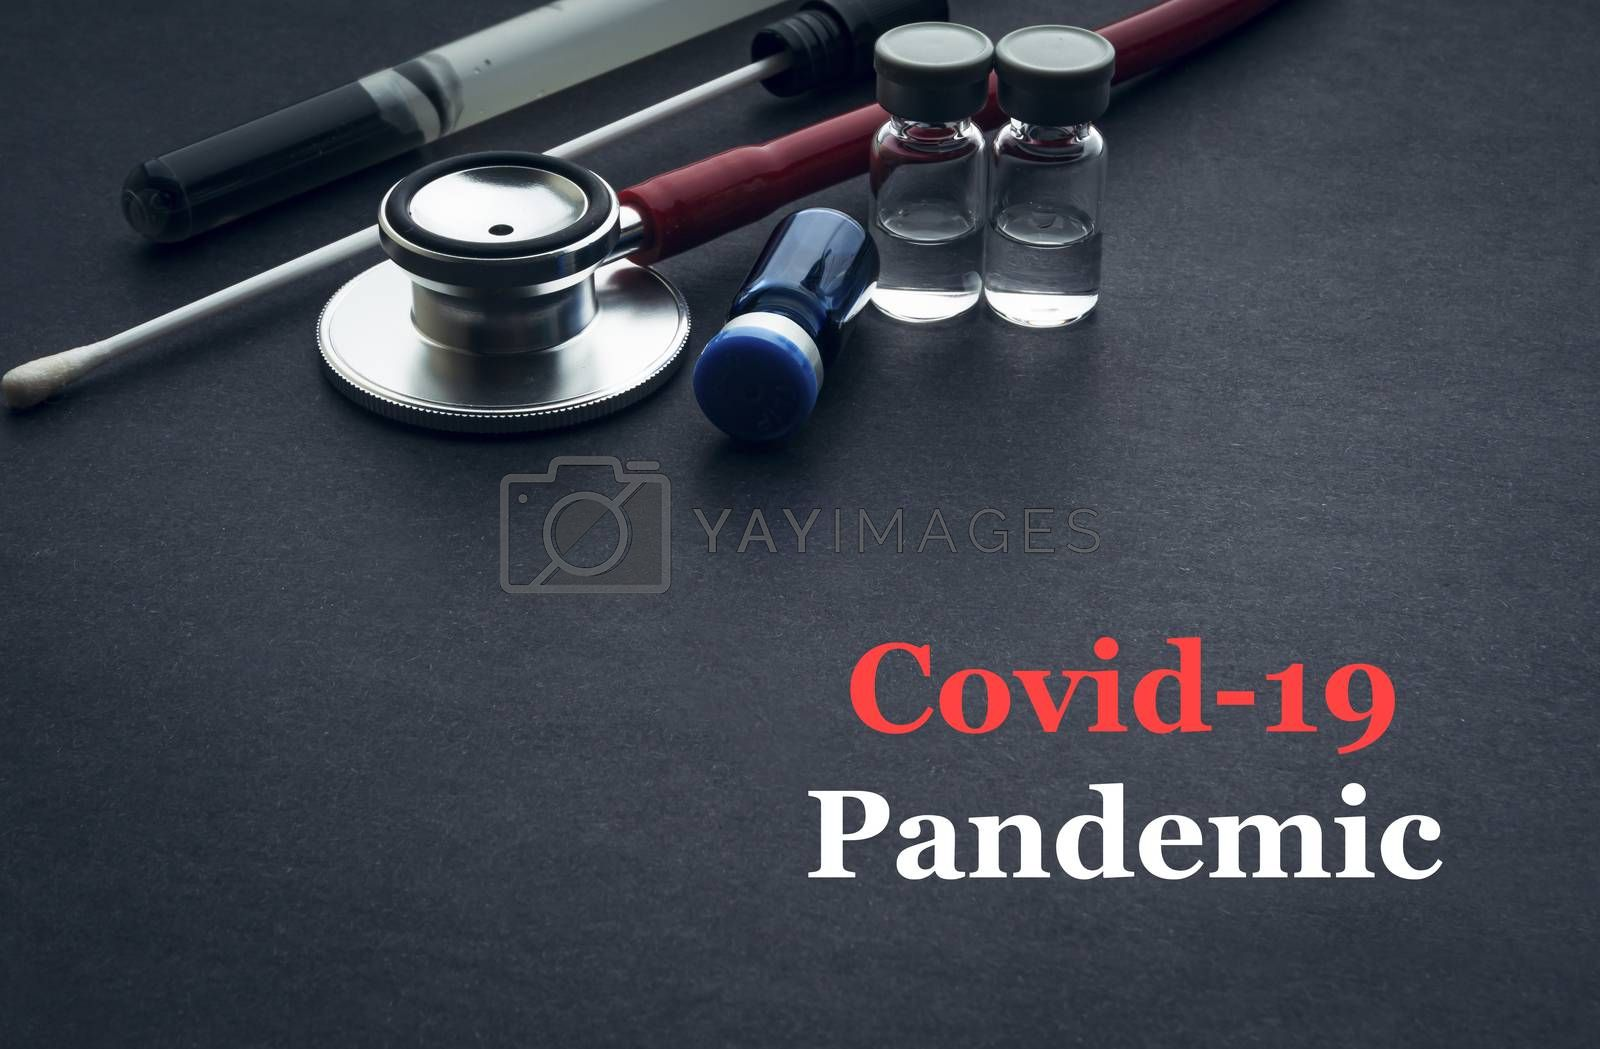 COVID-19 or CORONAVIRUS PANDEMIC text with stethoscope, medical swab and vial on black background. Covid-19 or Coronavirus concept.